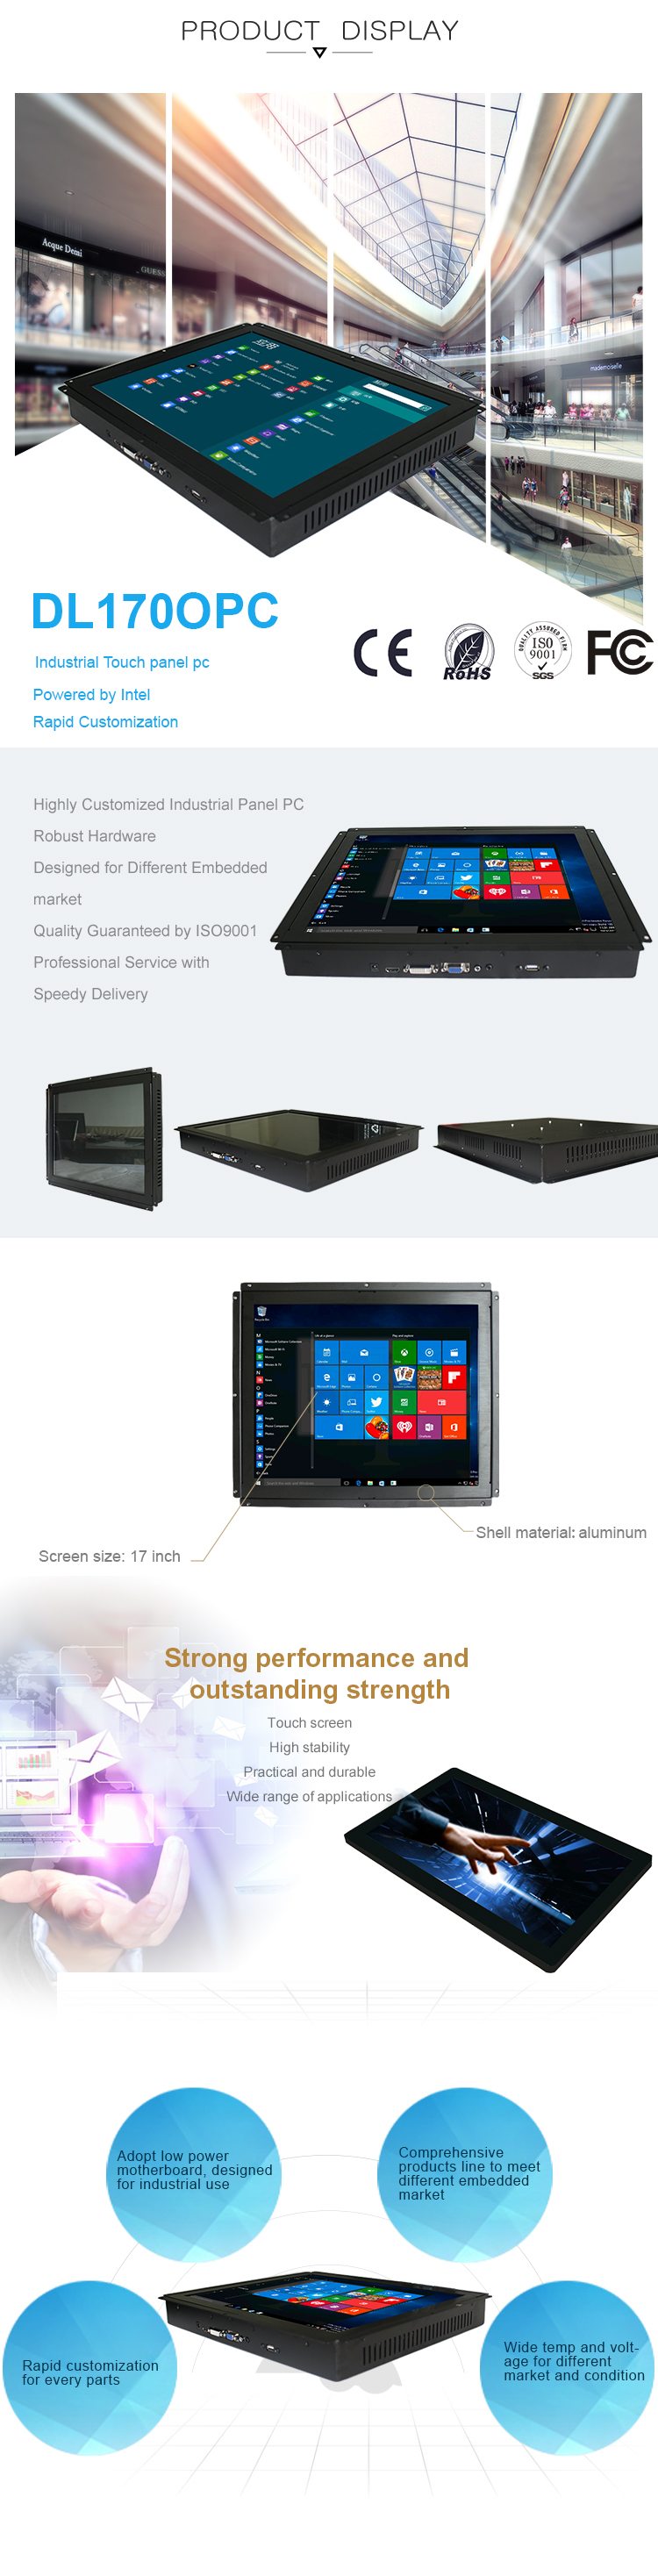 17 inch embedded industrial lcd touch screen computer monitor with tft vga lcd monitor hdm i DVI USB Ports